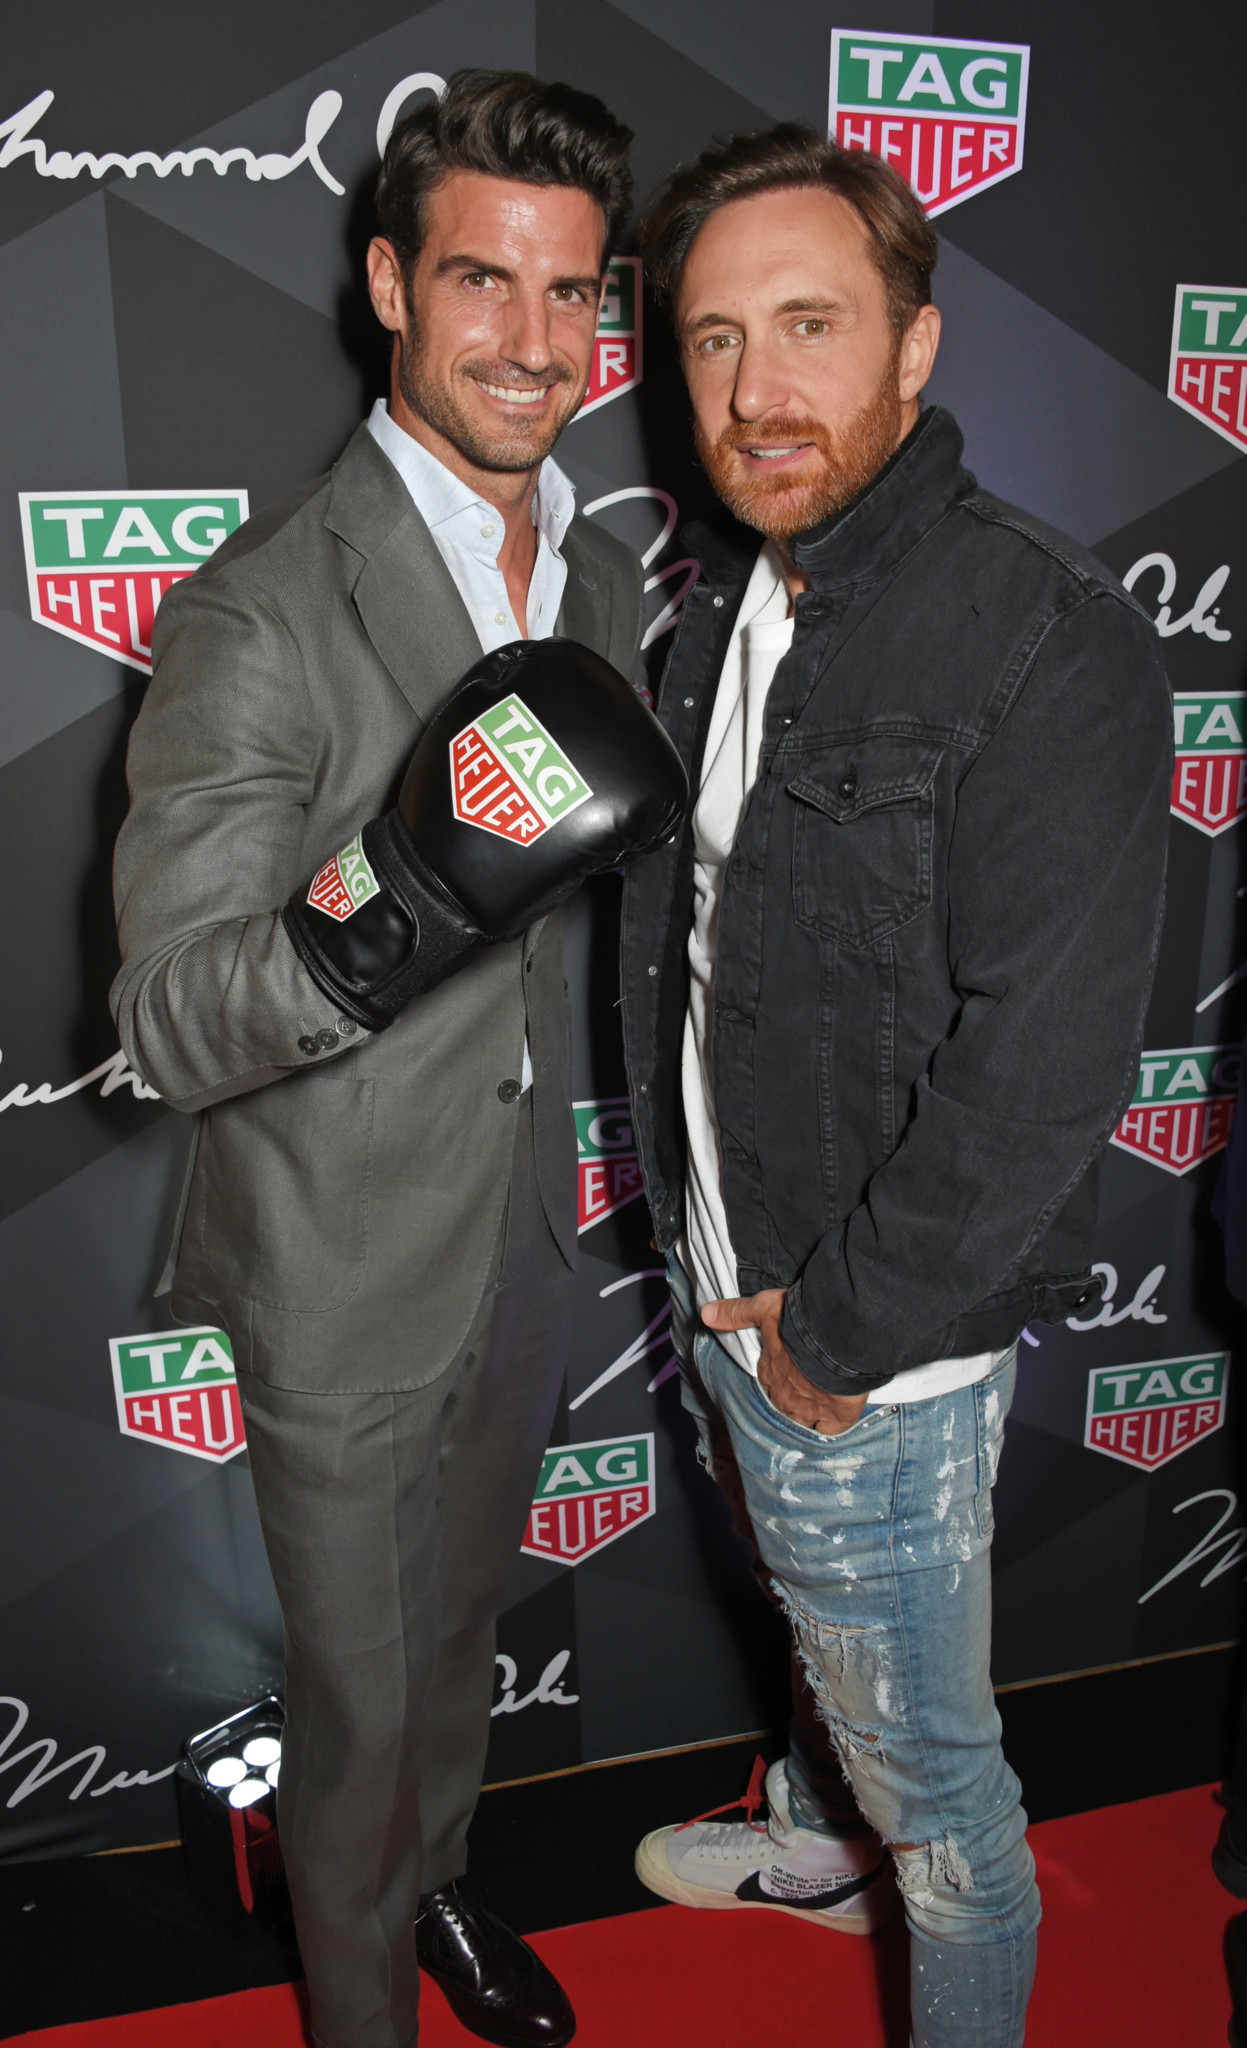 LONDON, ENGLAND - OCTOBER 10:  Aitor Ocio (L) and David Guetta attend the launch of the TAG Heuer Muhammad Ali Limited Edition Timepieces at BXR Gym on October 10, 2017 in London, England.  Pic Credit: Dave Benett